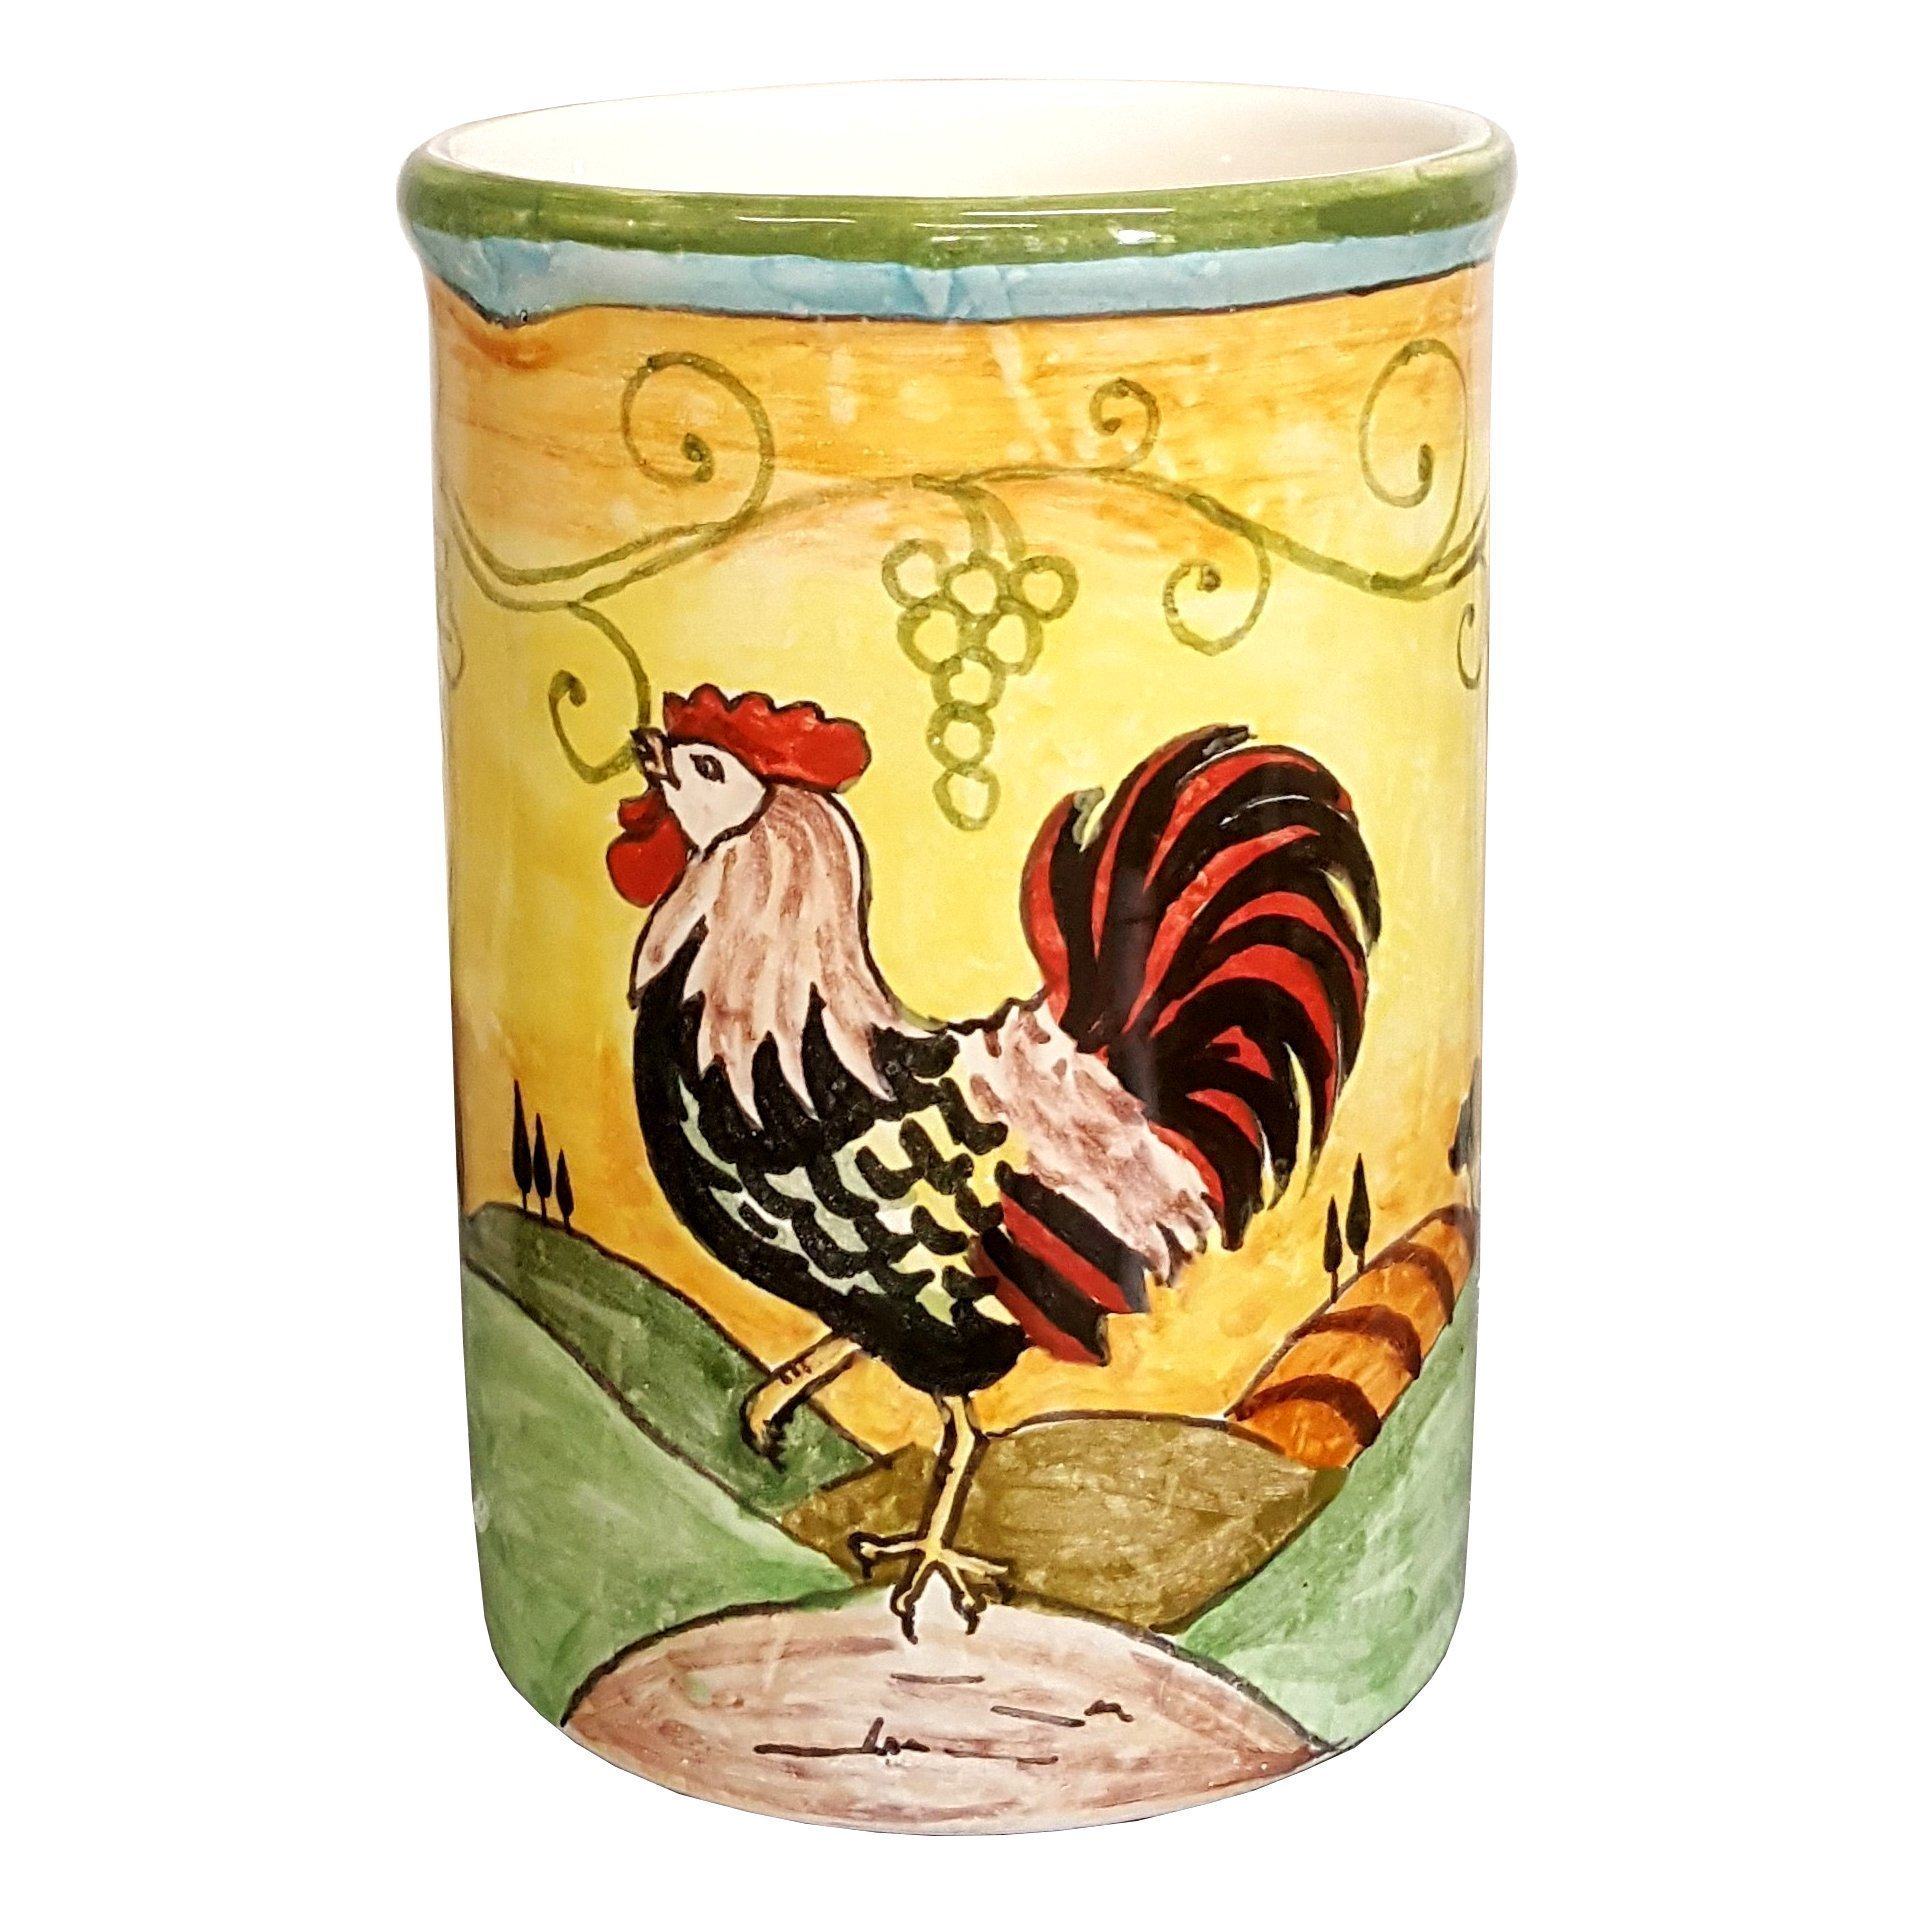 CERAMICHE D'ARTE PARRINI- Italian Ceramic Utensil Holder Vessel Hand Painted Decorated Tuscan Rooster Made in ITALY Art Pottery by CERAMICHE D'ARTE PARRINI since 1979